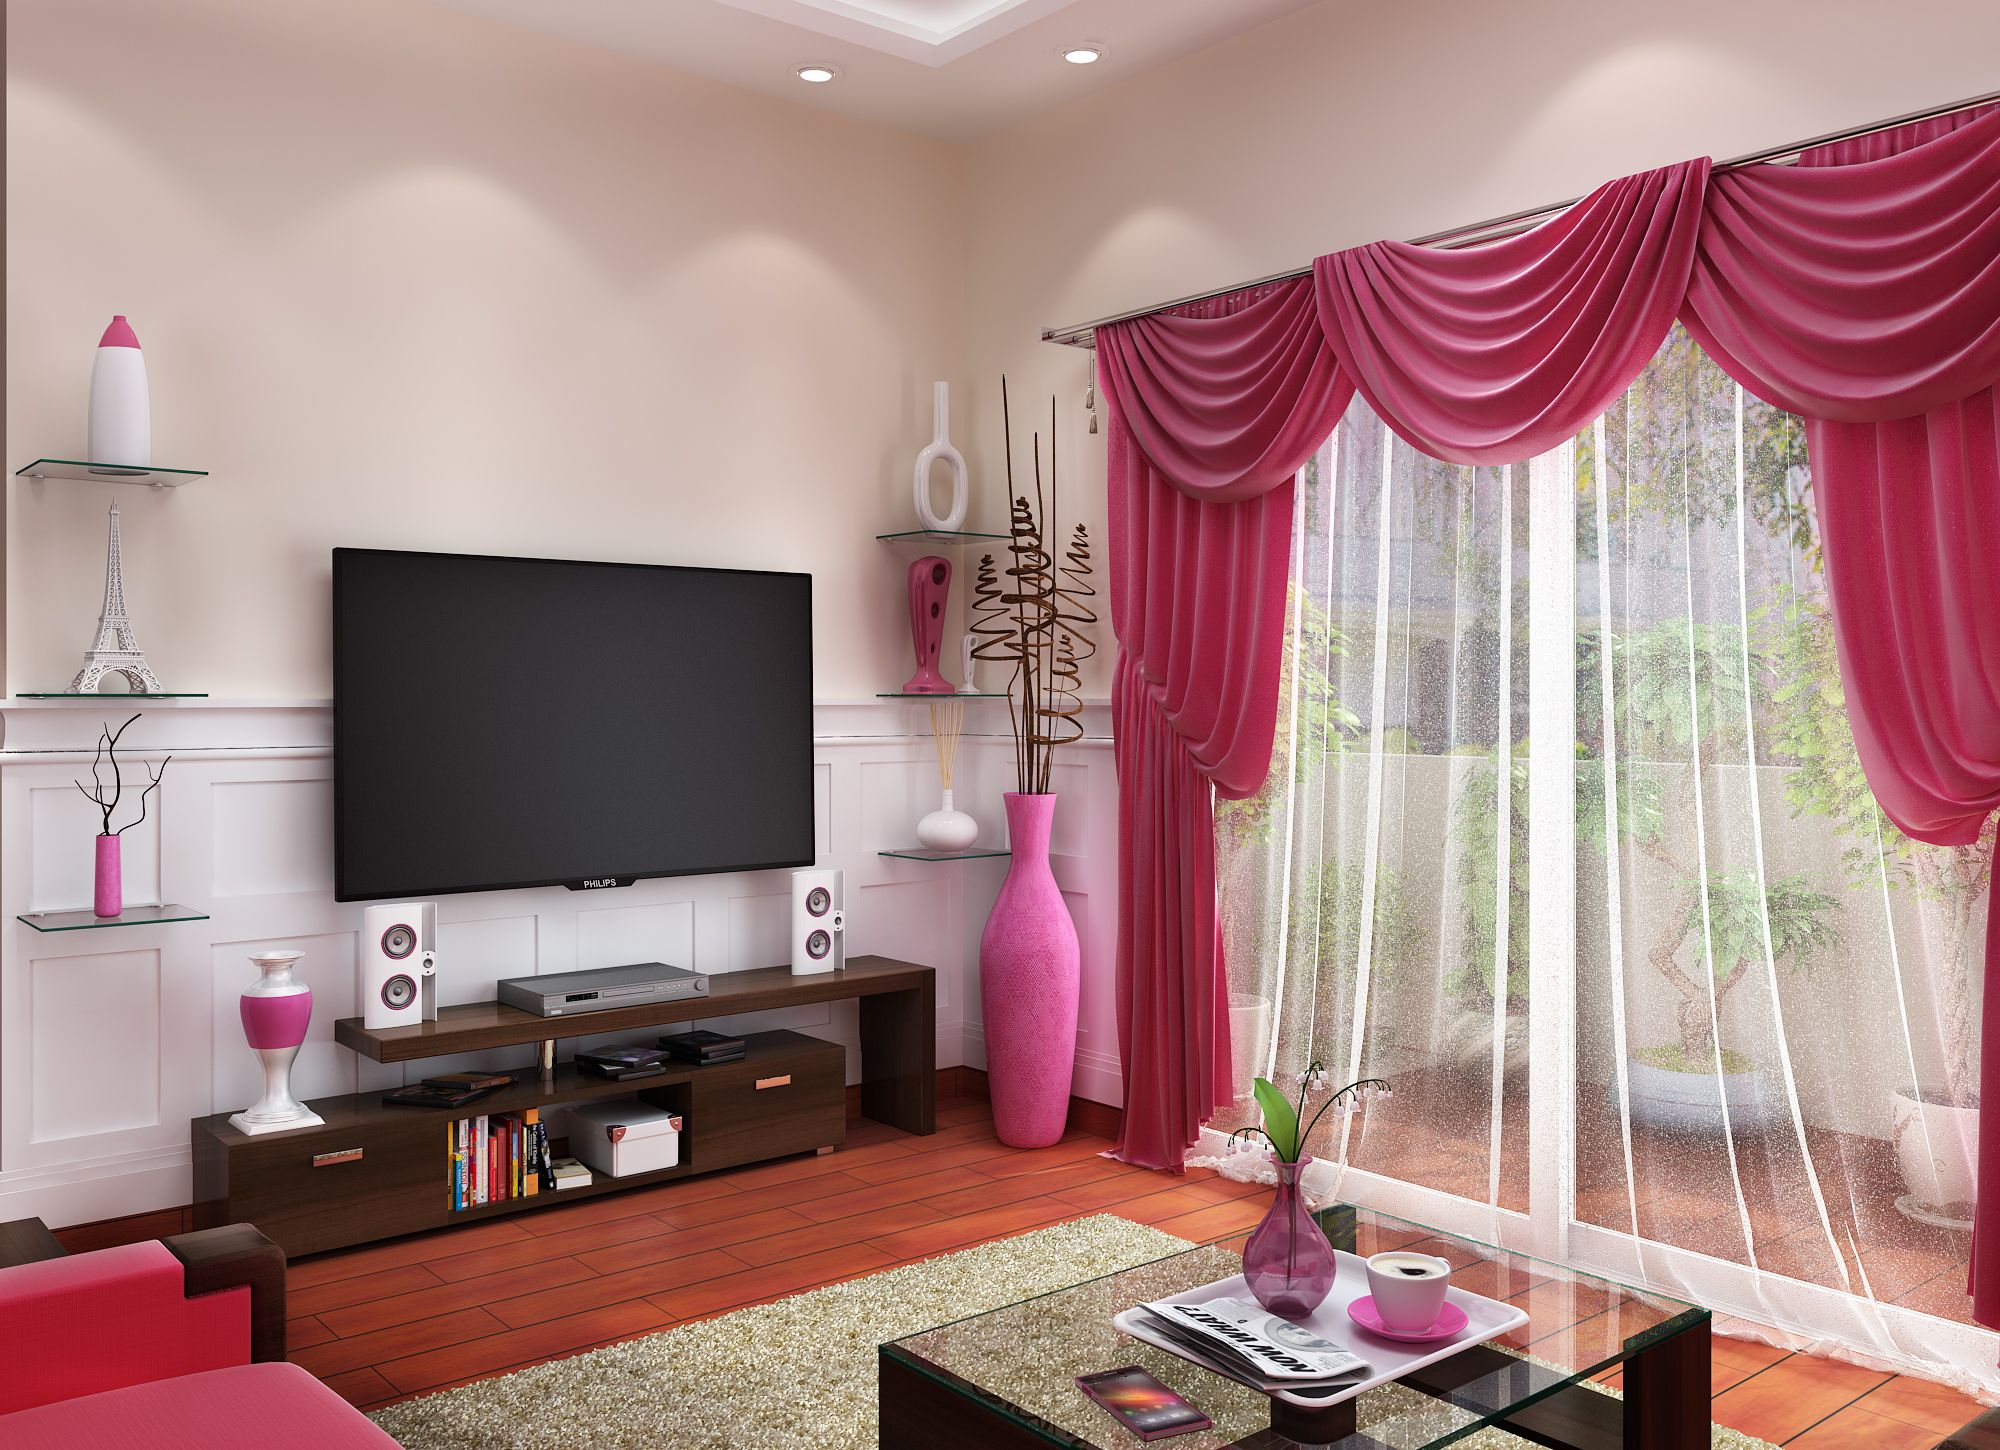 Interior design for our home - Girgit Is One Of The Top Interior Designer In Bangalore They Design Our Home Very